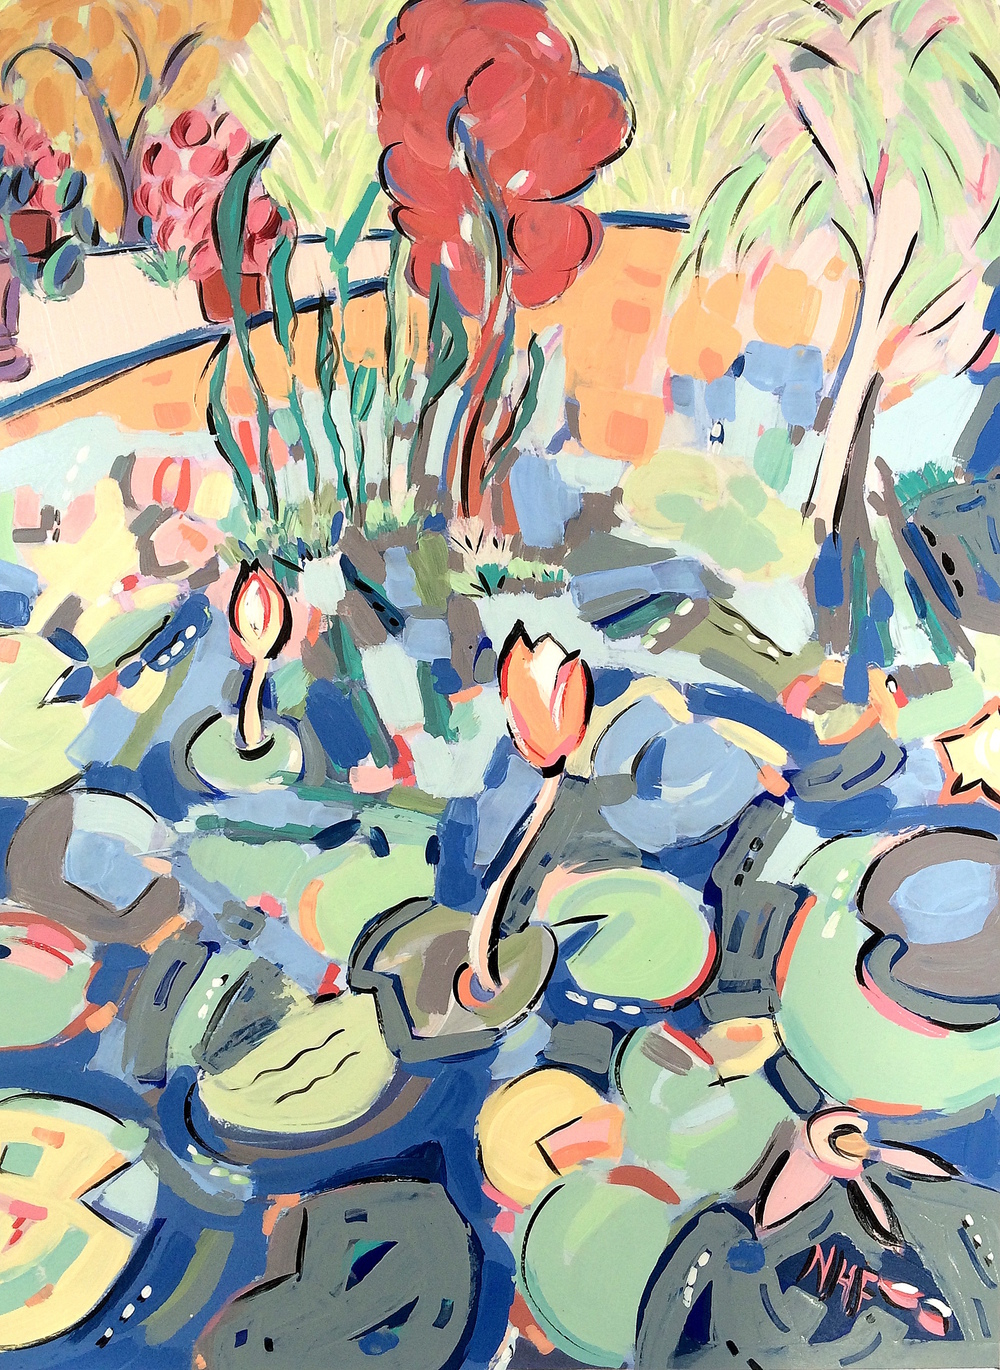 Water Lilies in the Botanical Gardens 2 , acrylic on mounted board, 18x15, 22x20 matted, $775